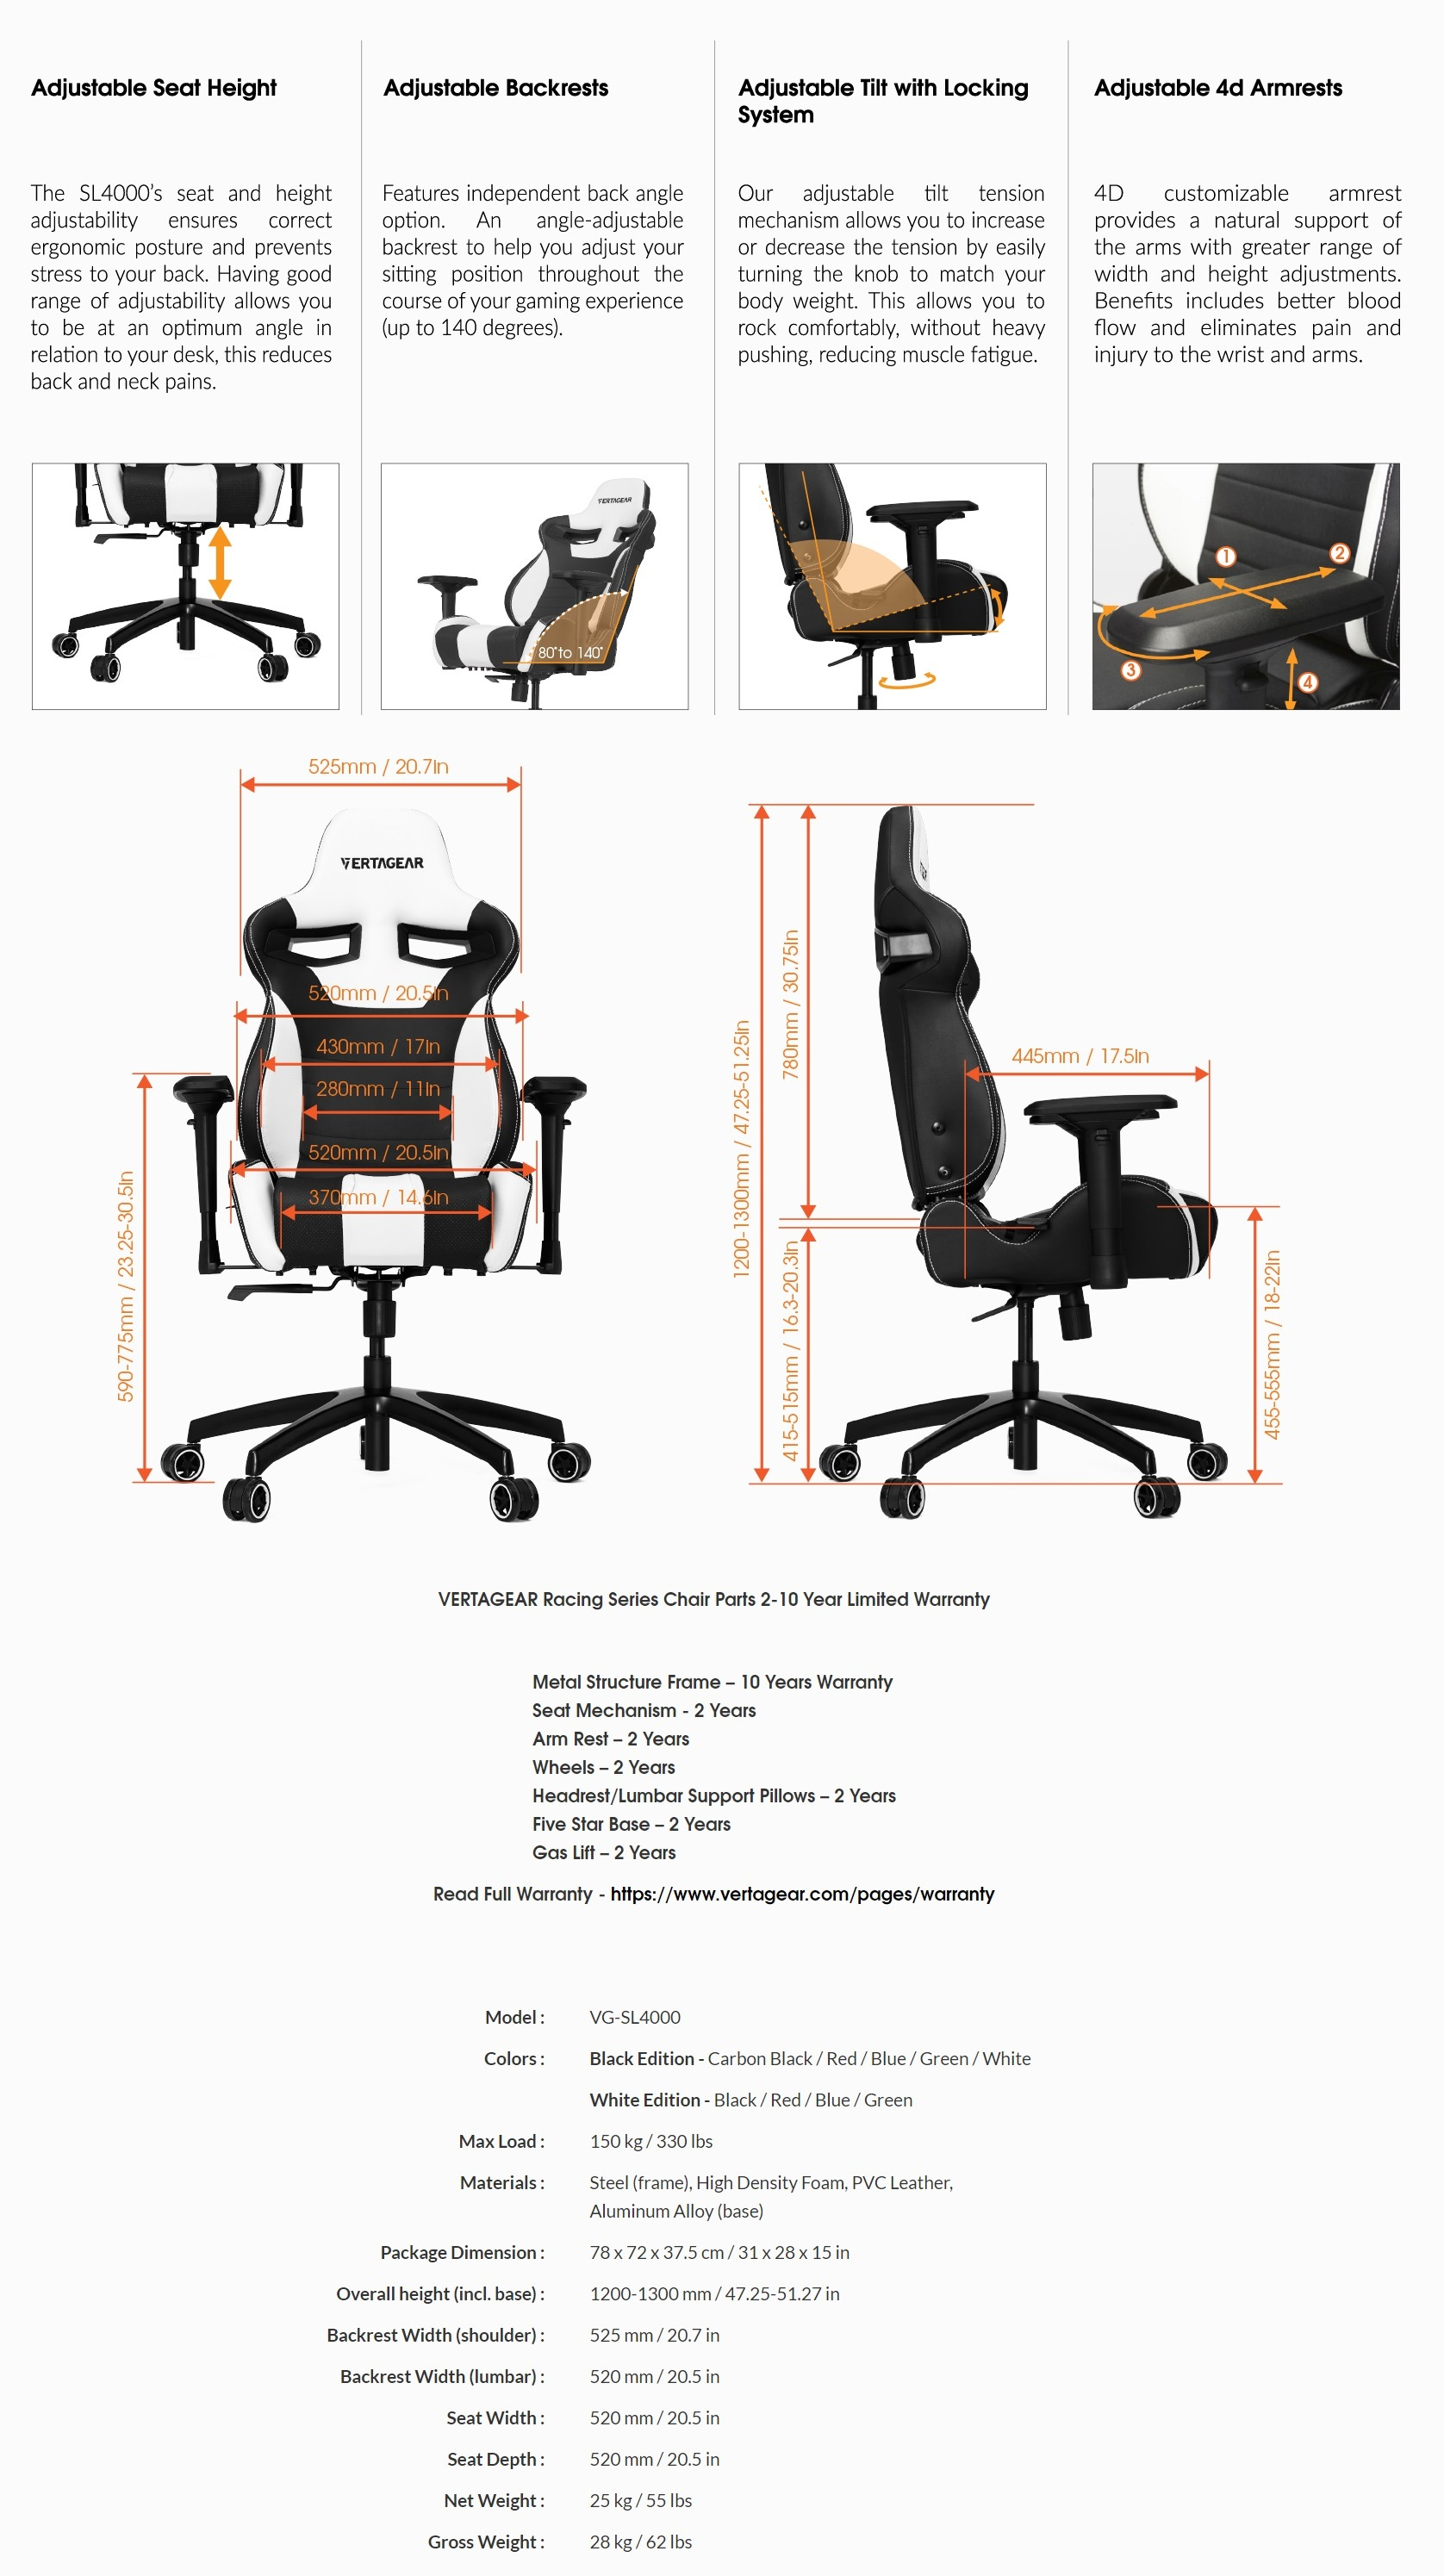 A large marketing image providing additional information about the product Vertagear Racing Series S-Line SL4000 Gaming Chair White/Red Edition - Additional alt info not provided